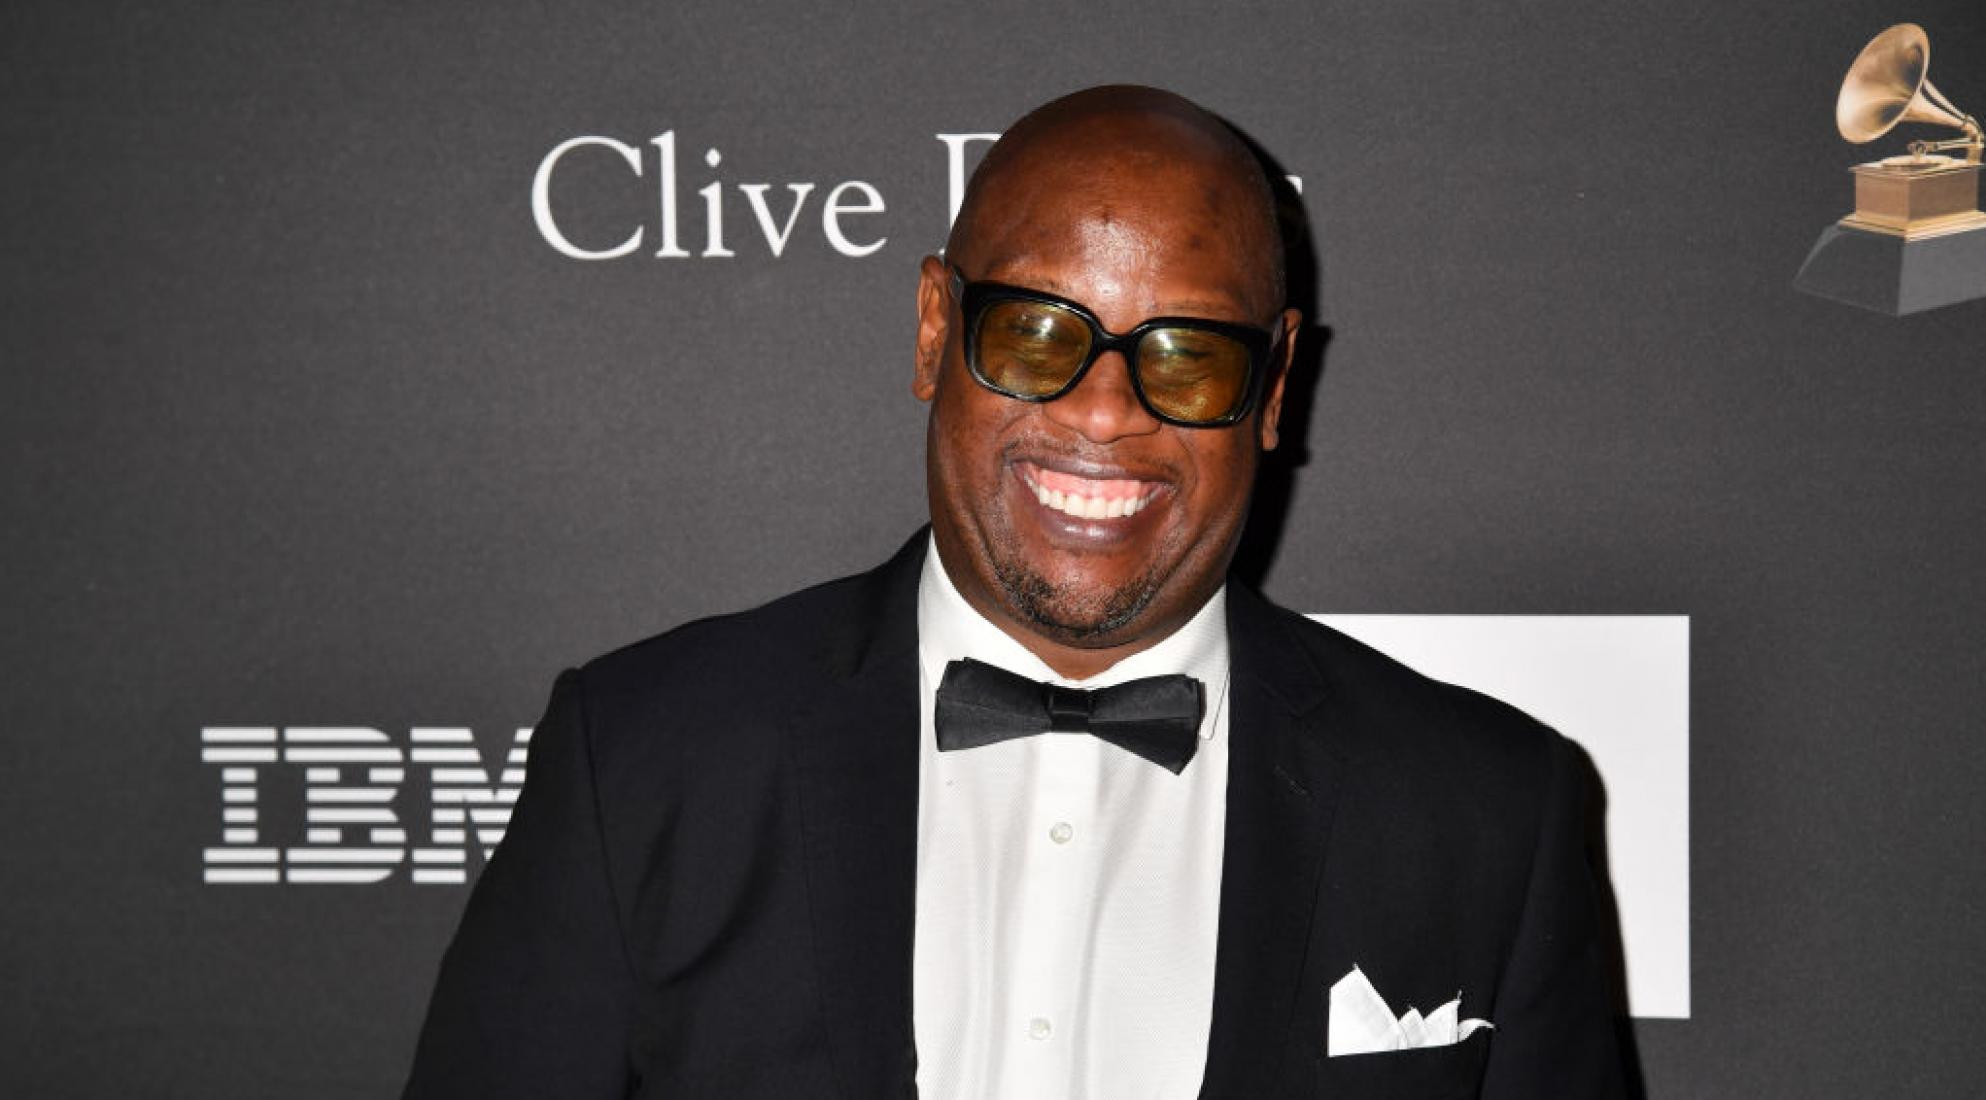 Andre Harrell attends the Recording Academy/Clive Davis Pre-GRAMMY Gala in 2019